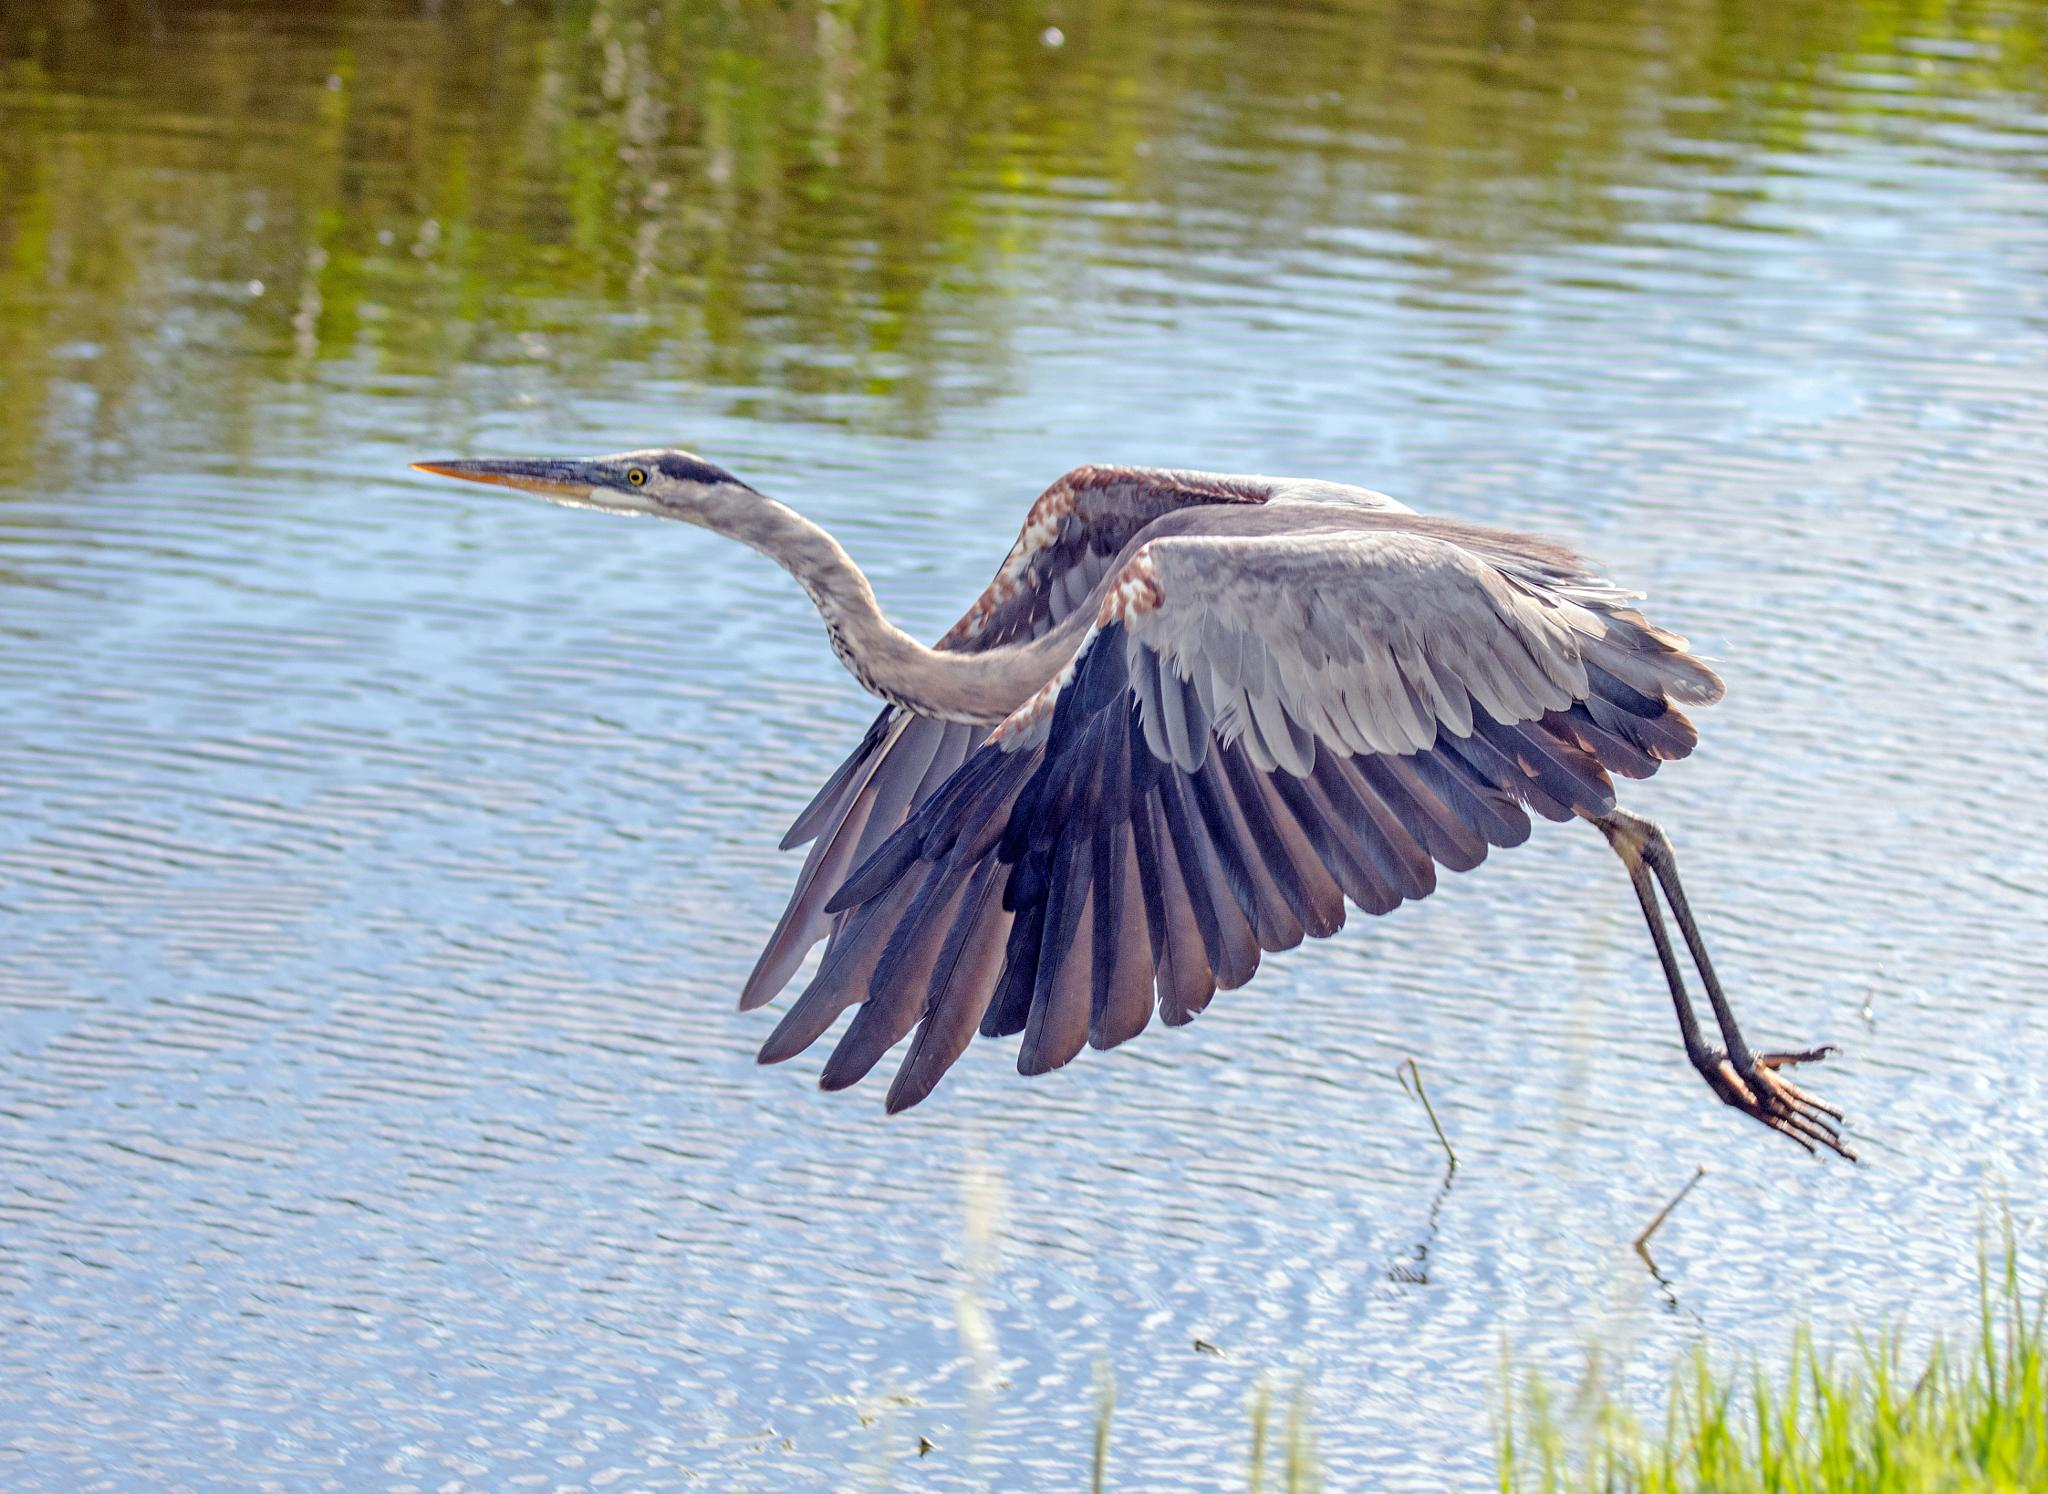 Great Blue on the Move by Barry Melamed